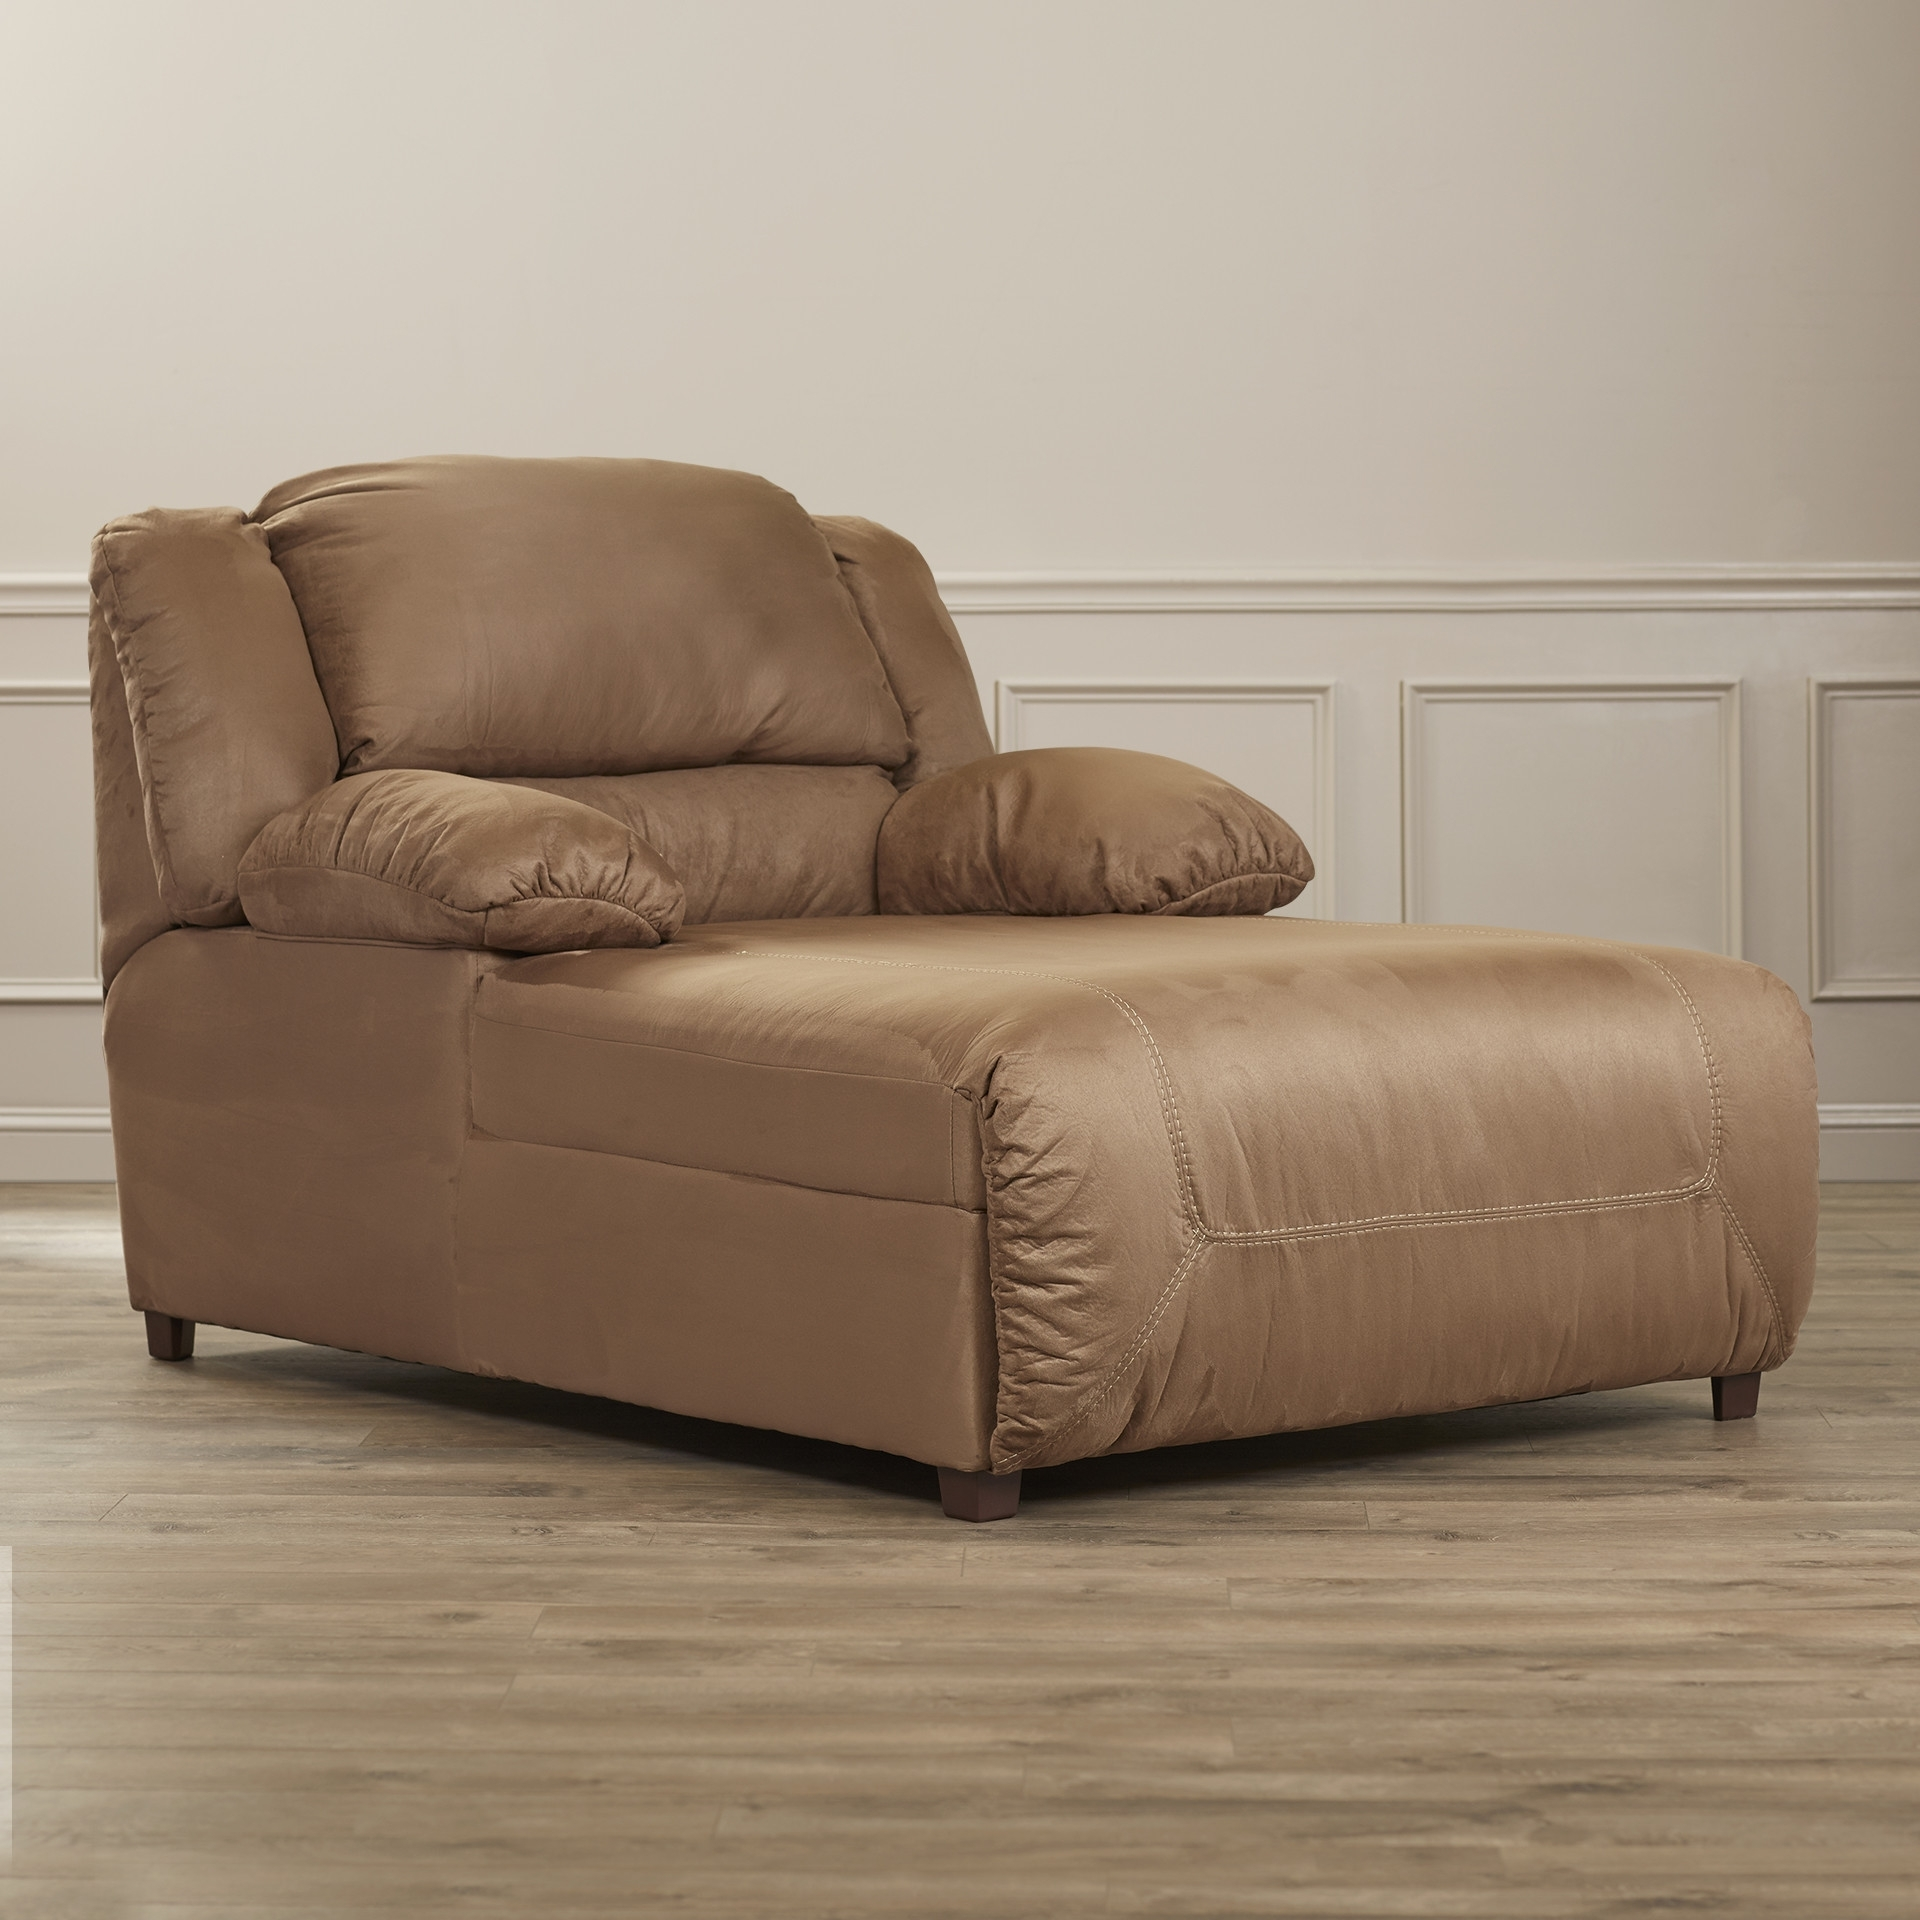 Reclining Chaise Lounges With Regard To Most Popular Reclining Chaise Lounge Chair Indoor – Modern Chairs Quality (View 14 of 15)